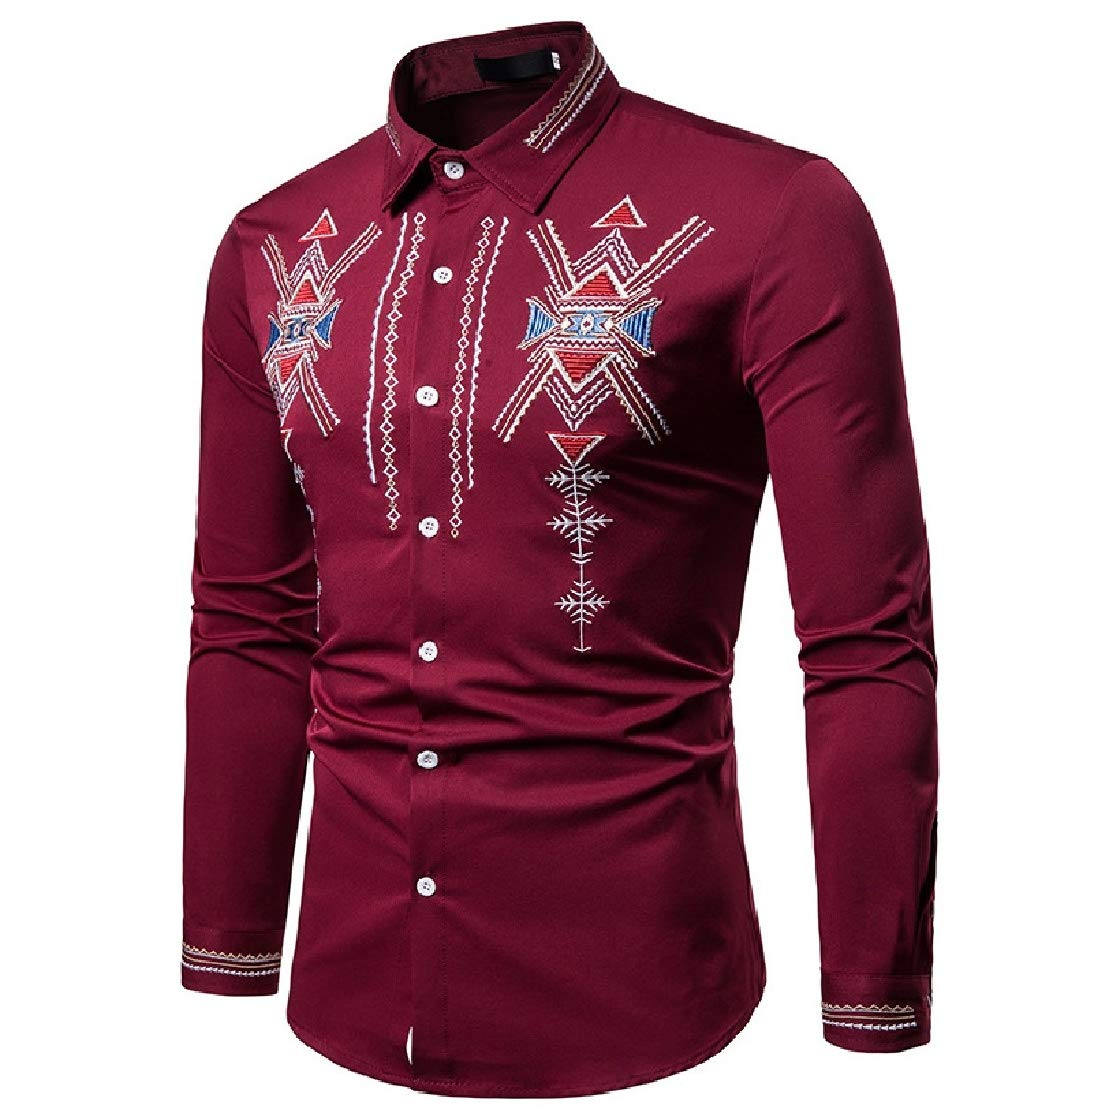 YUNY Mens Floral Embroidery Lapel Collar Long Sleeve Ethnic Style Western Shirt Wine Red L